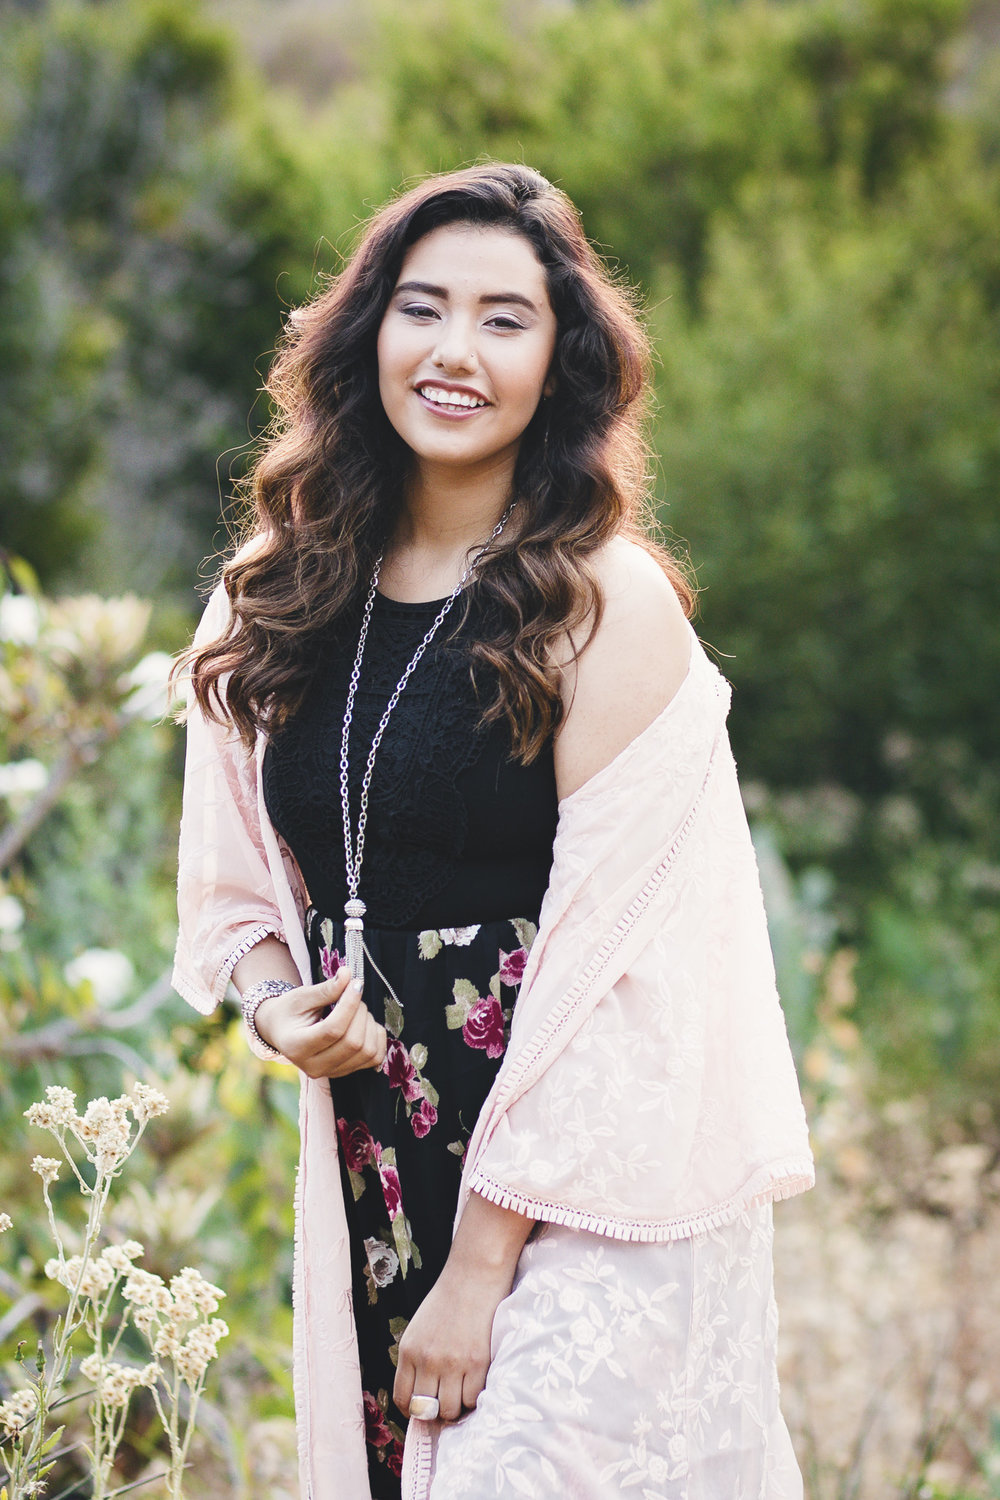 shawna-parks-photo-celeste-escanuela-senior-photos-san-diego-024.jpg